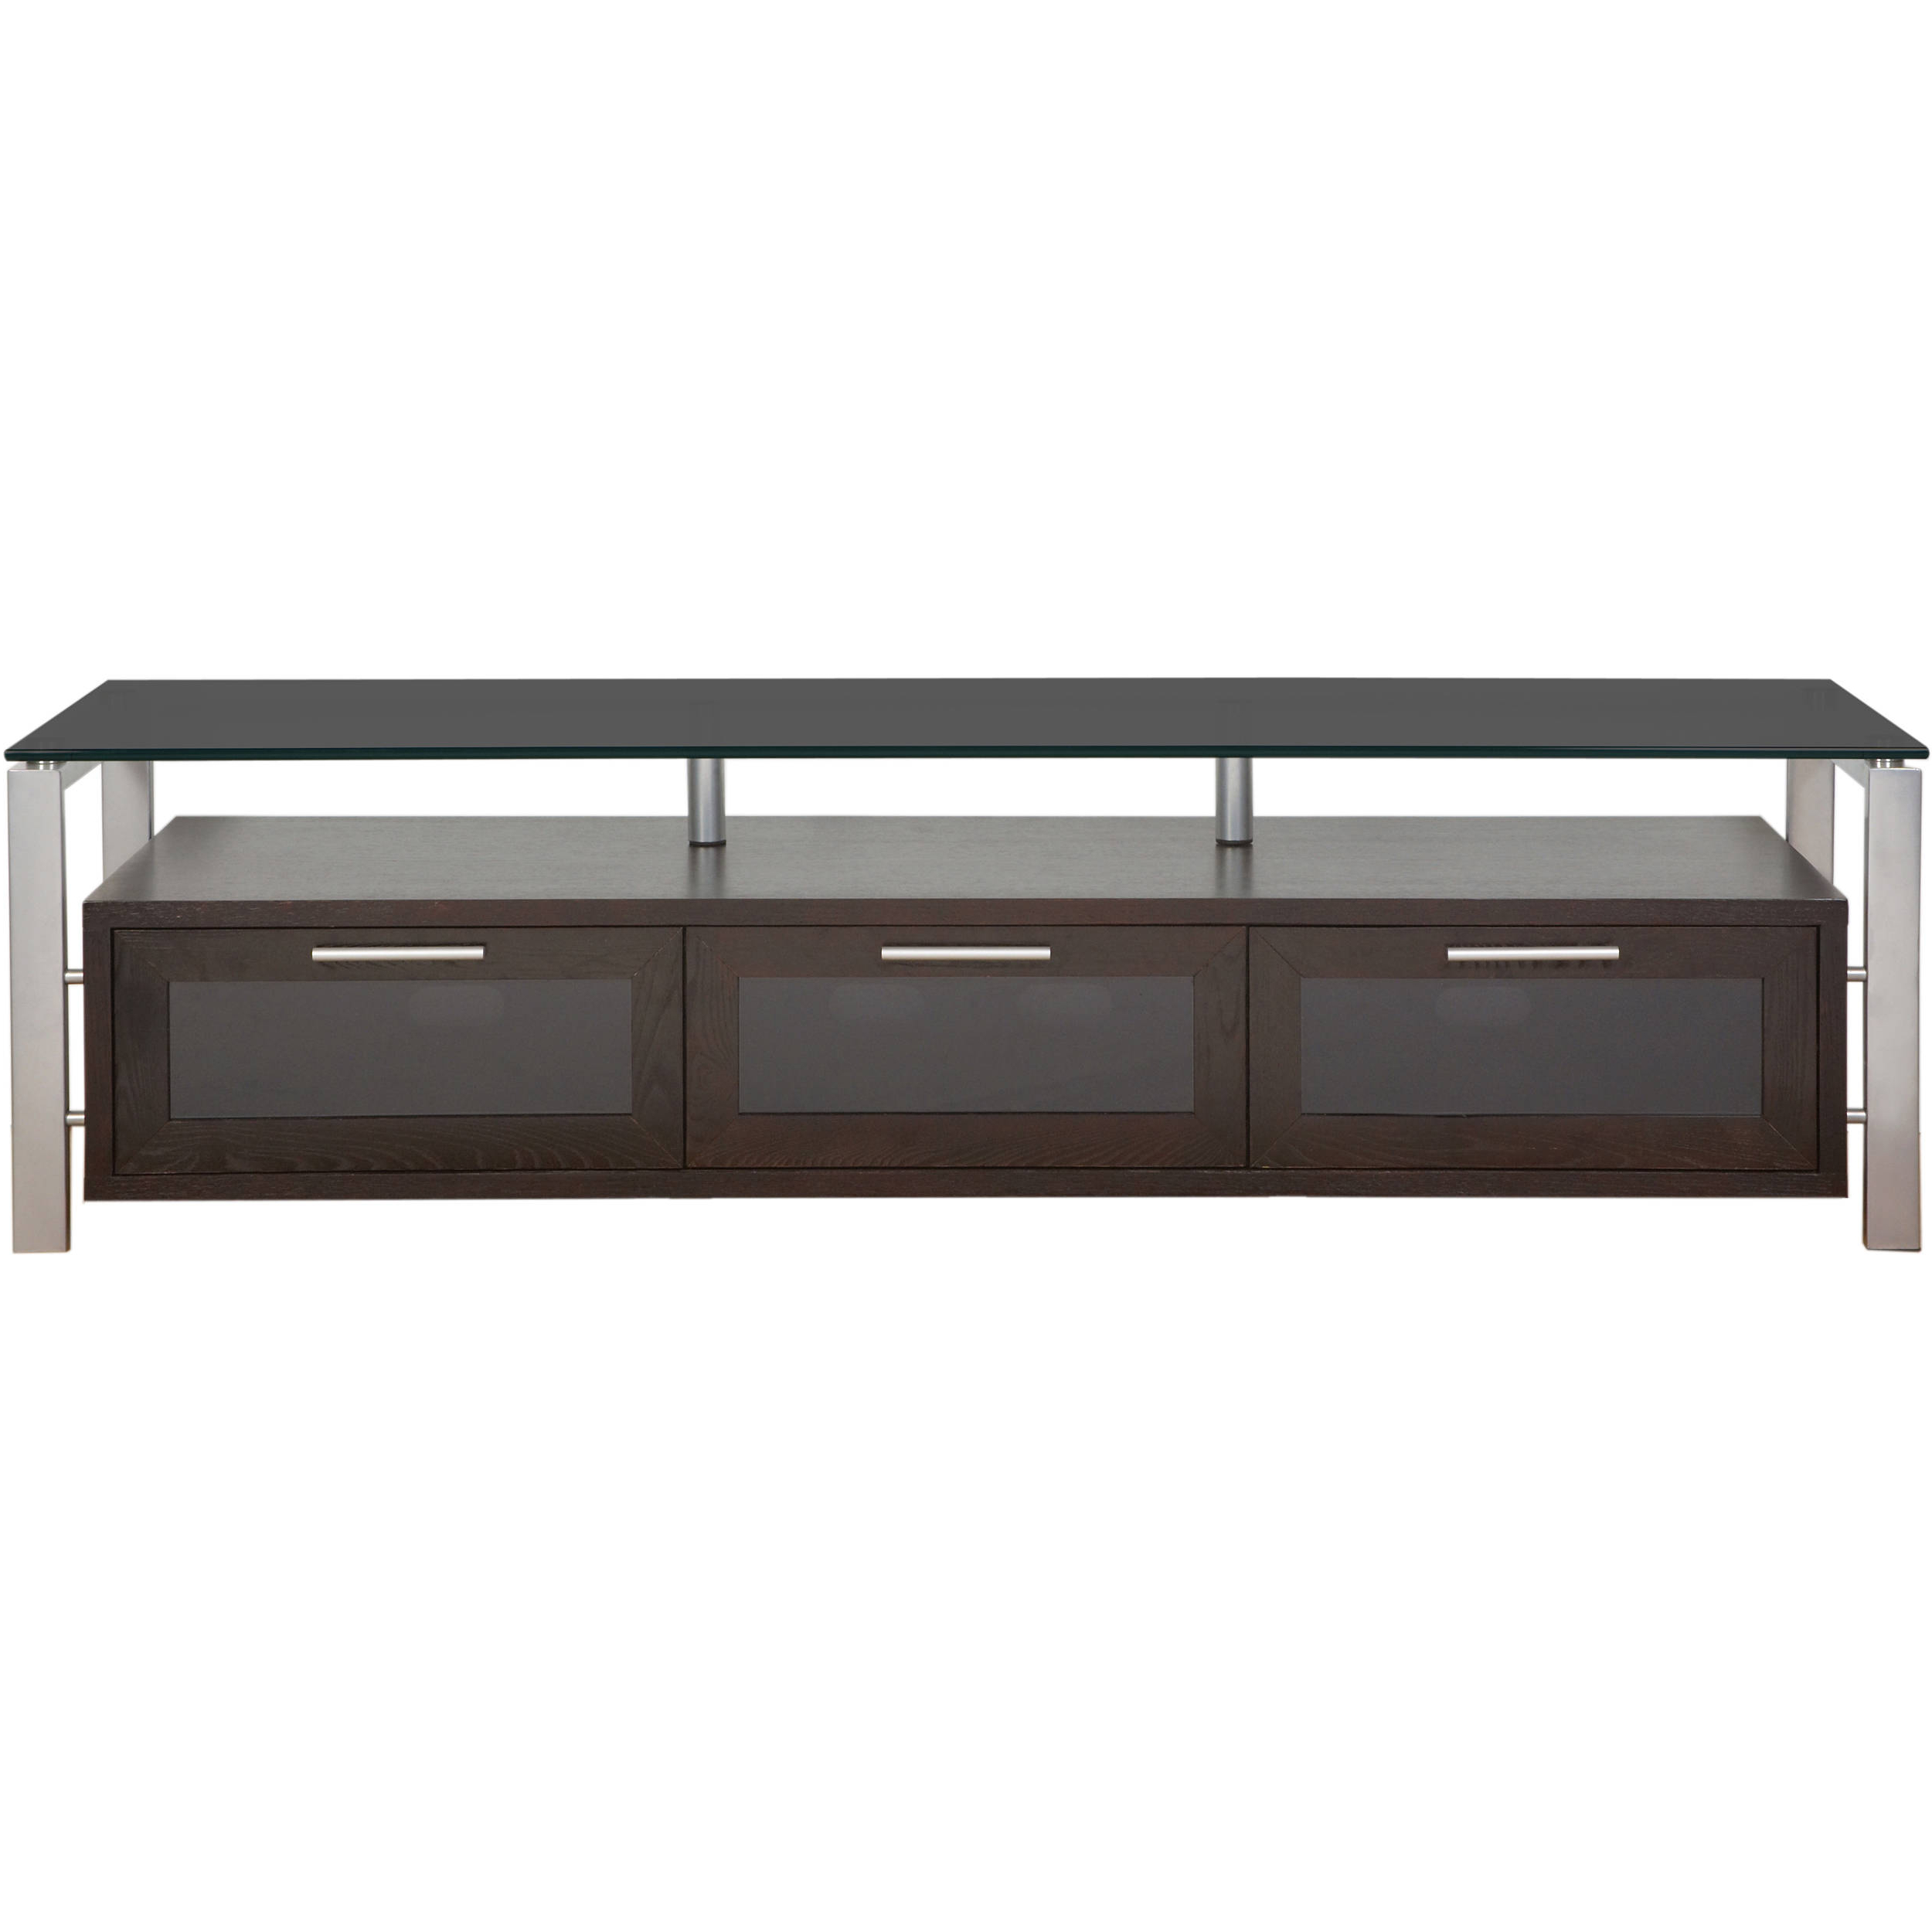 Favorite Glass Tv Cabinets Throughout Plateau Decor 71 Tv Stand Decor 71 (E) S Bg B&h Photo Video (View 4 of 20)